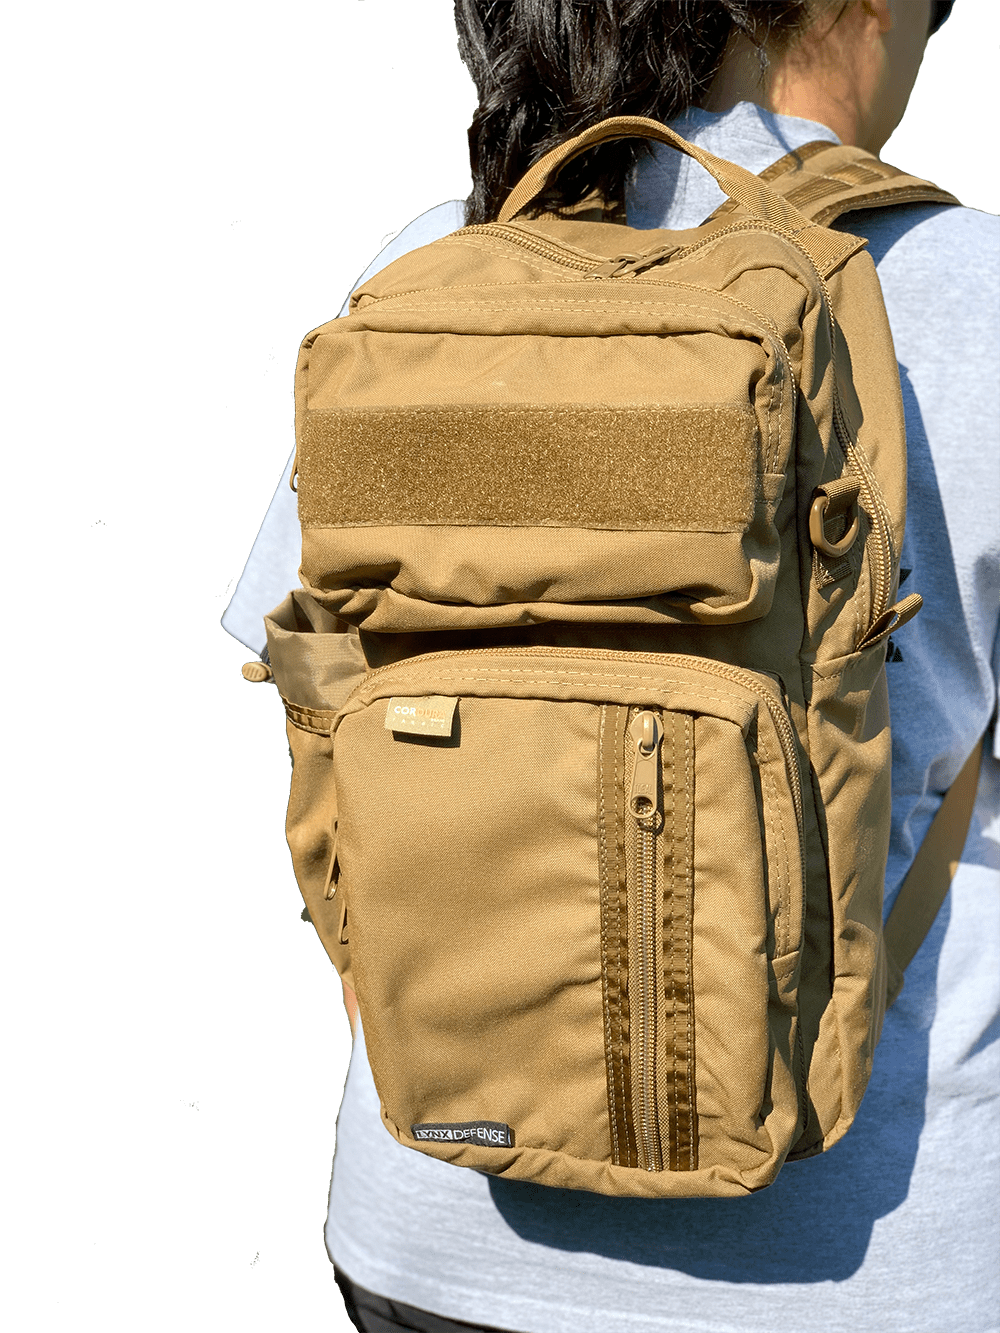 Lynx Defense Backpack